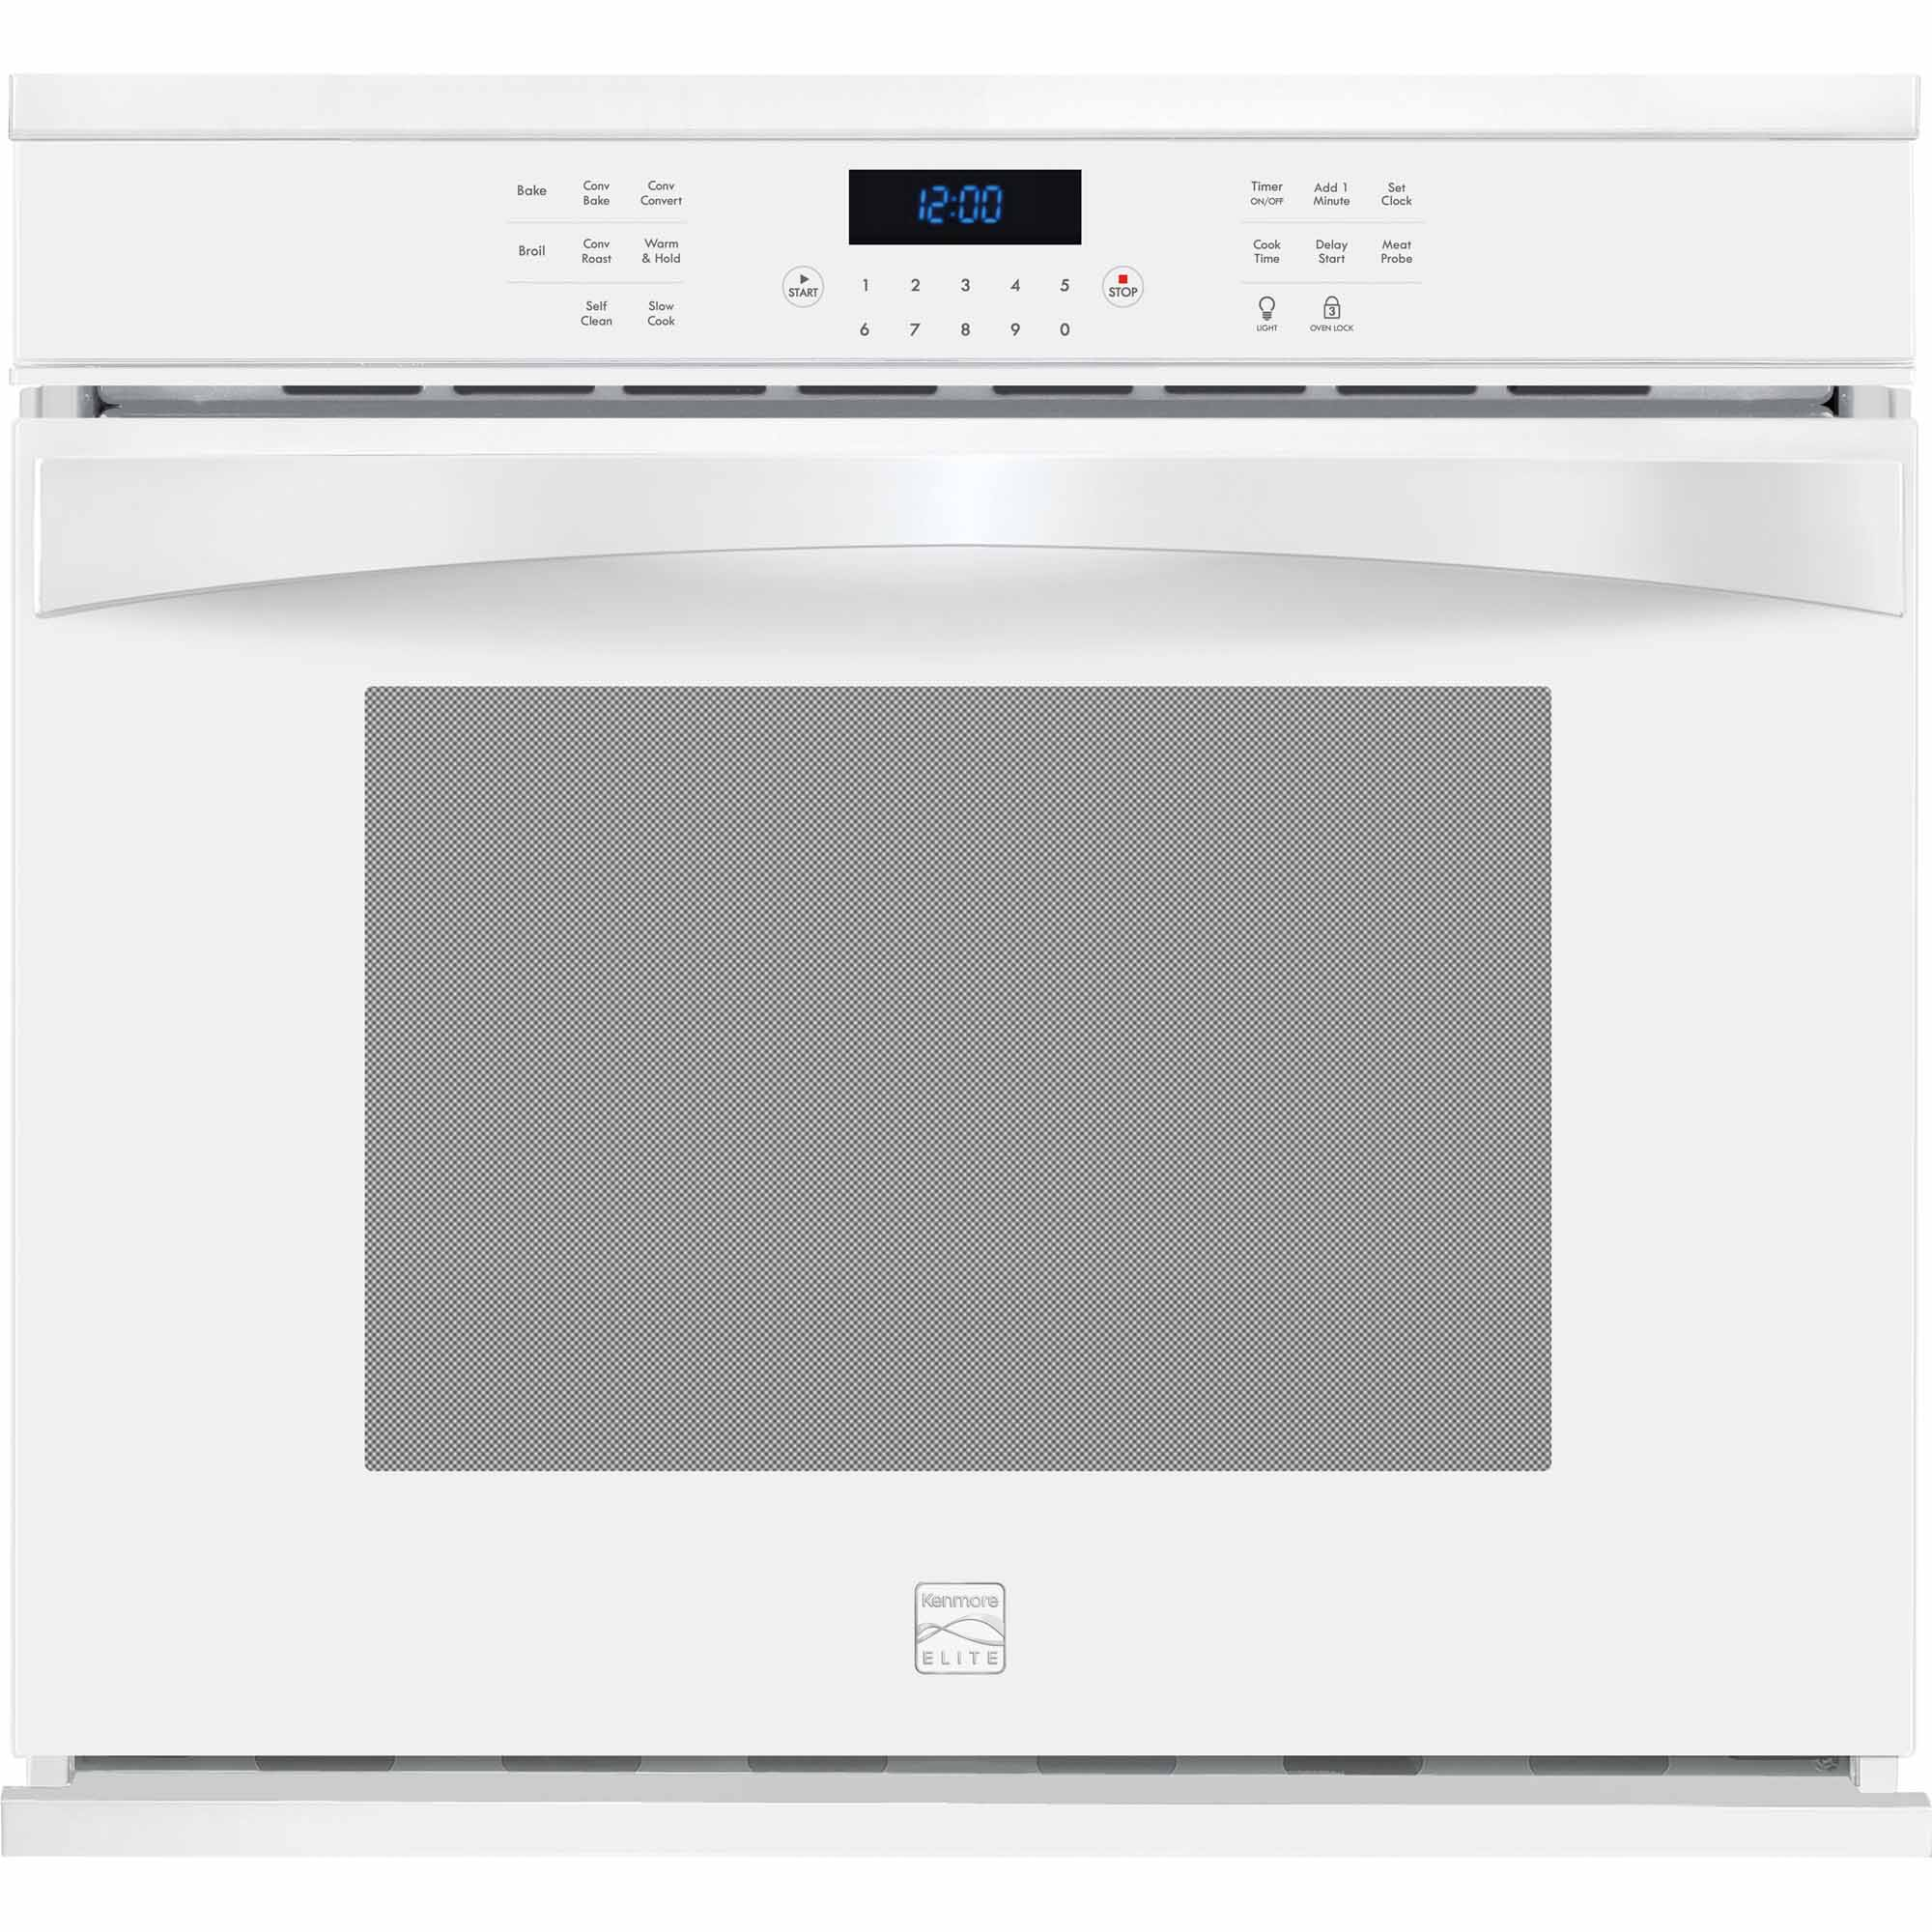 Kenmore Elite 48352 30 Electric Single Wall Oven - White